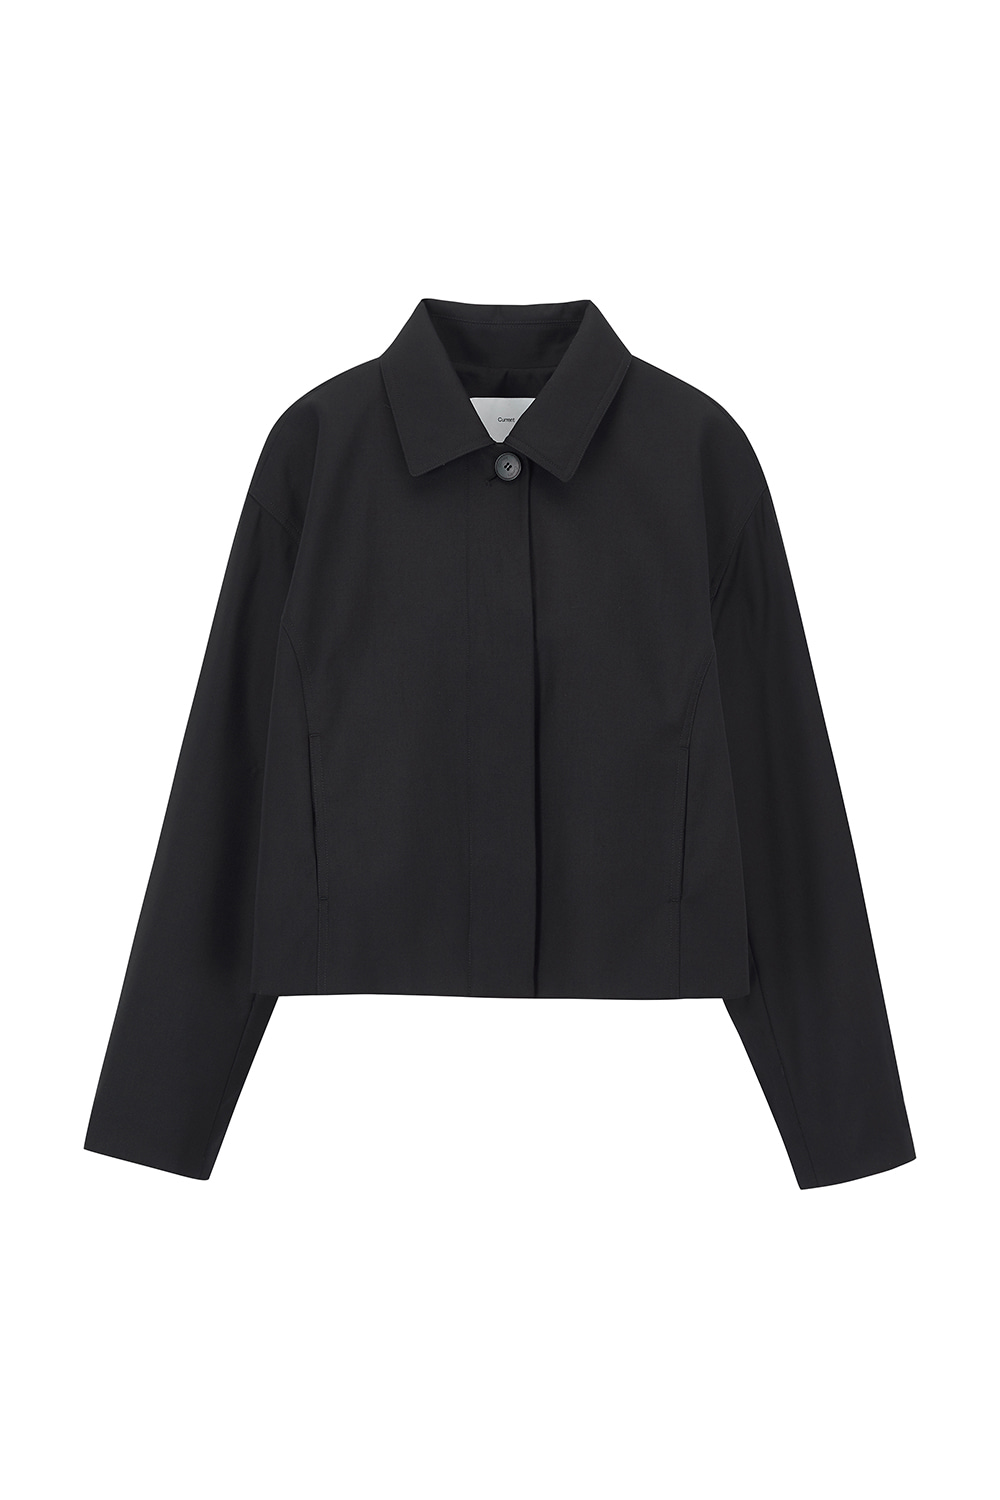 Crop Jacket Women [Black]